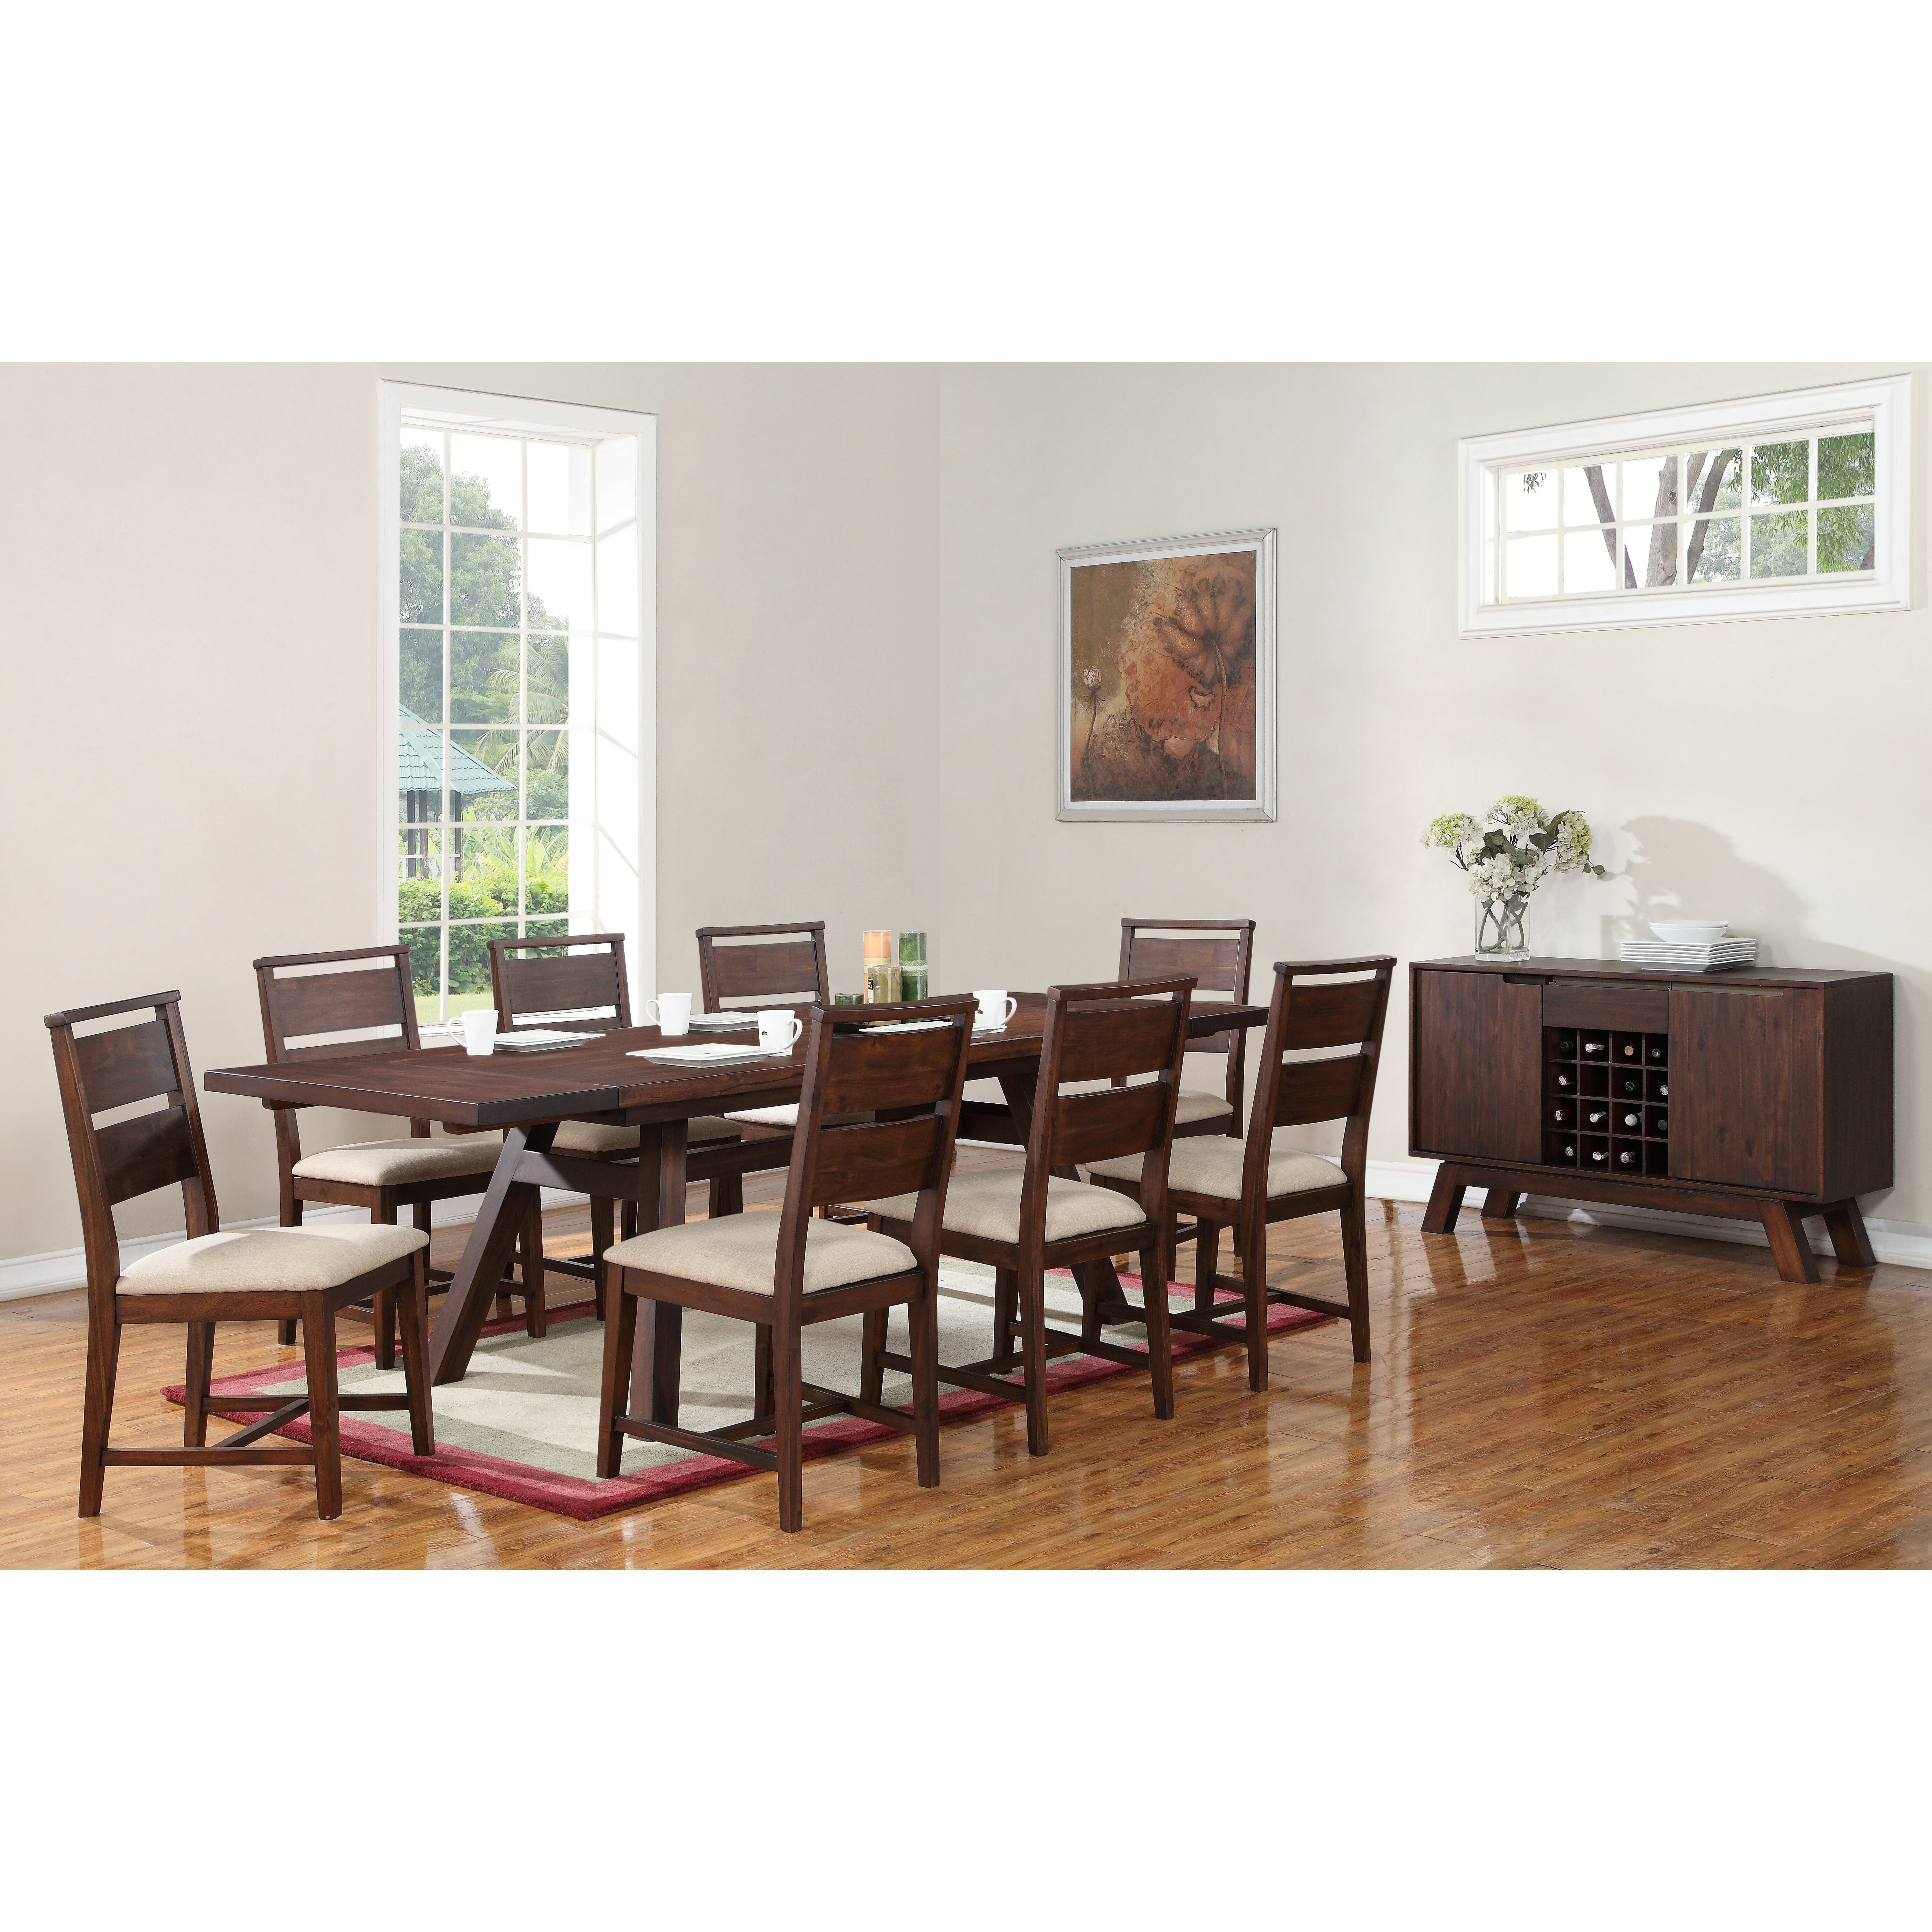 86 dining room furniture portland dining room for Reclaimed wood furniture portland oregon